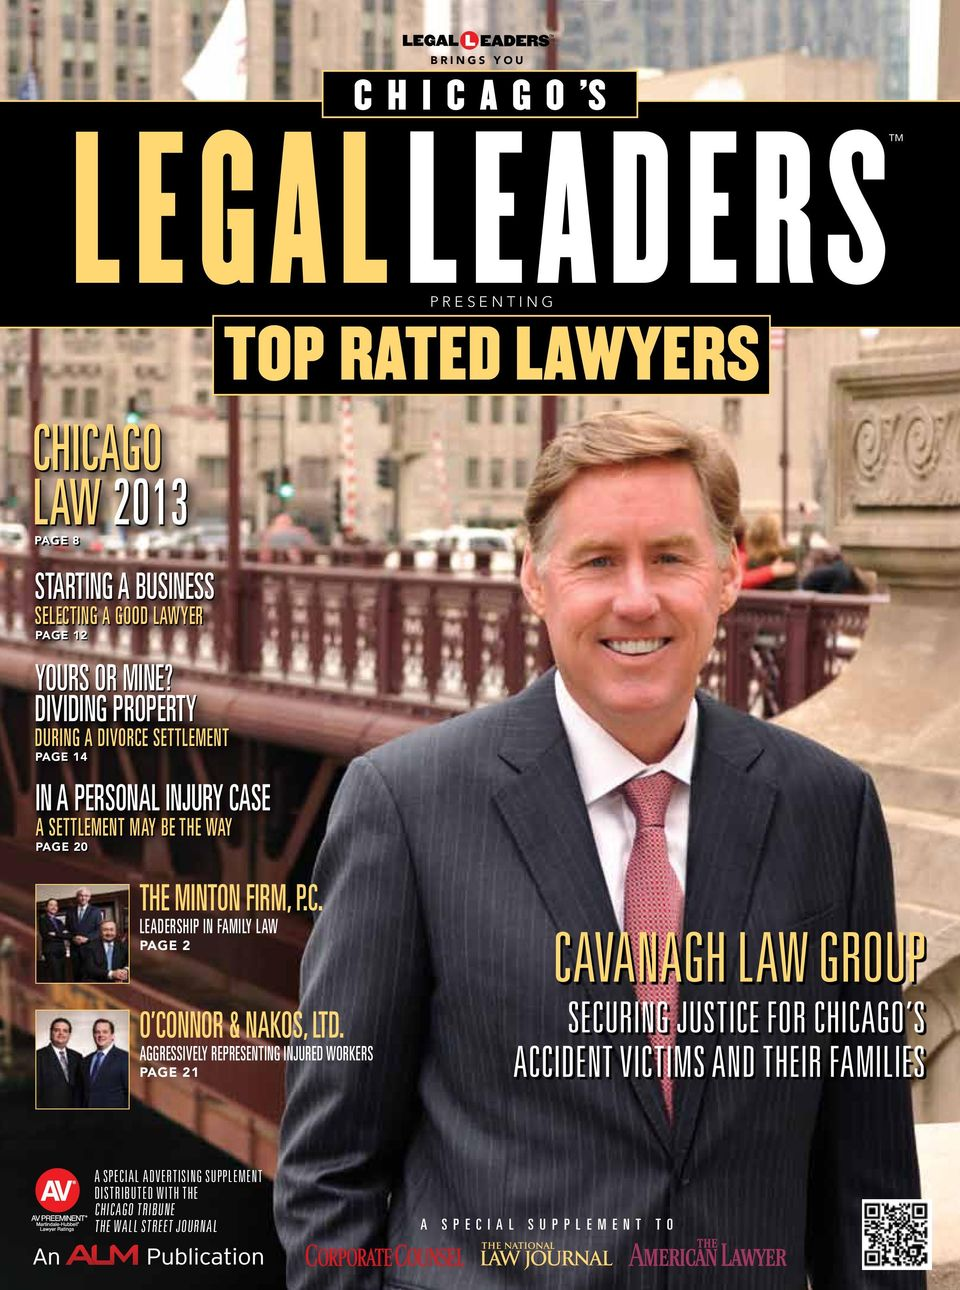 LAWYERS The minton firm, P.C. leadership in family law Page 2 O Connor & Nakos, Ltd.